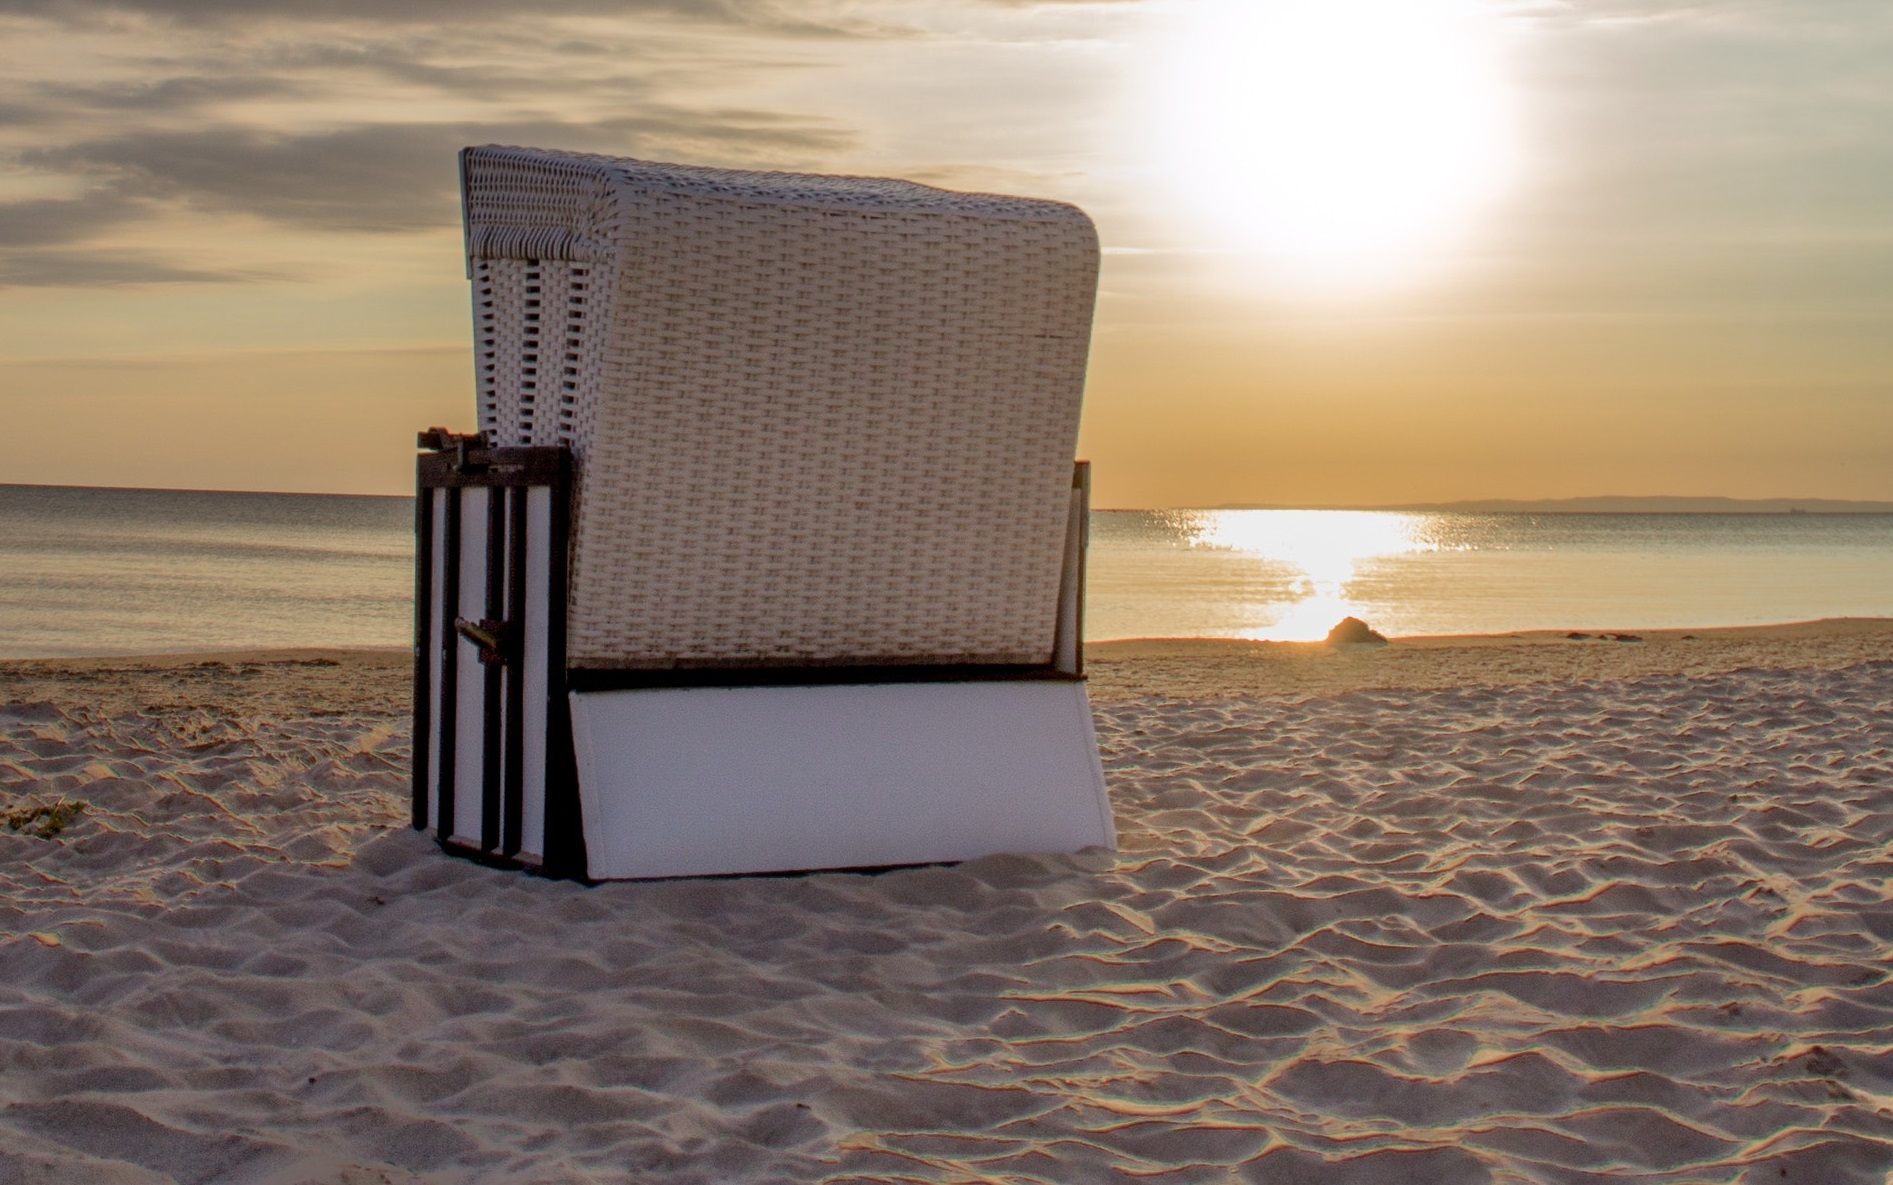 zus tzlicher sonnenschutz klasse idee beachair dein strandkorb. Black Bedroom Furniture Sets. Home Design Ideas